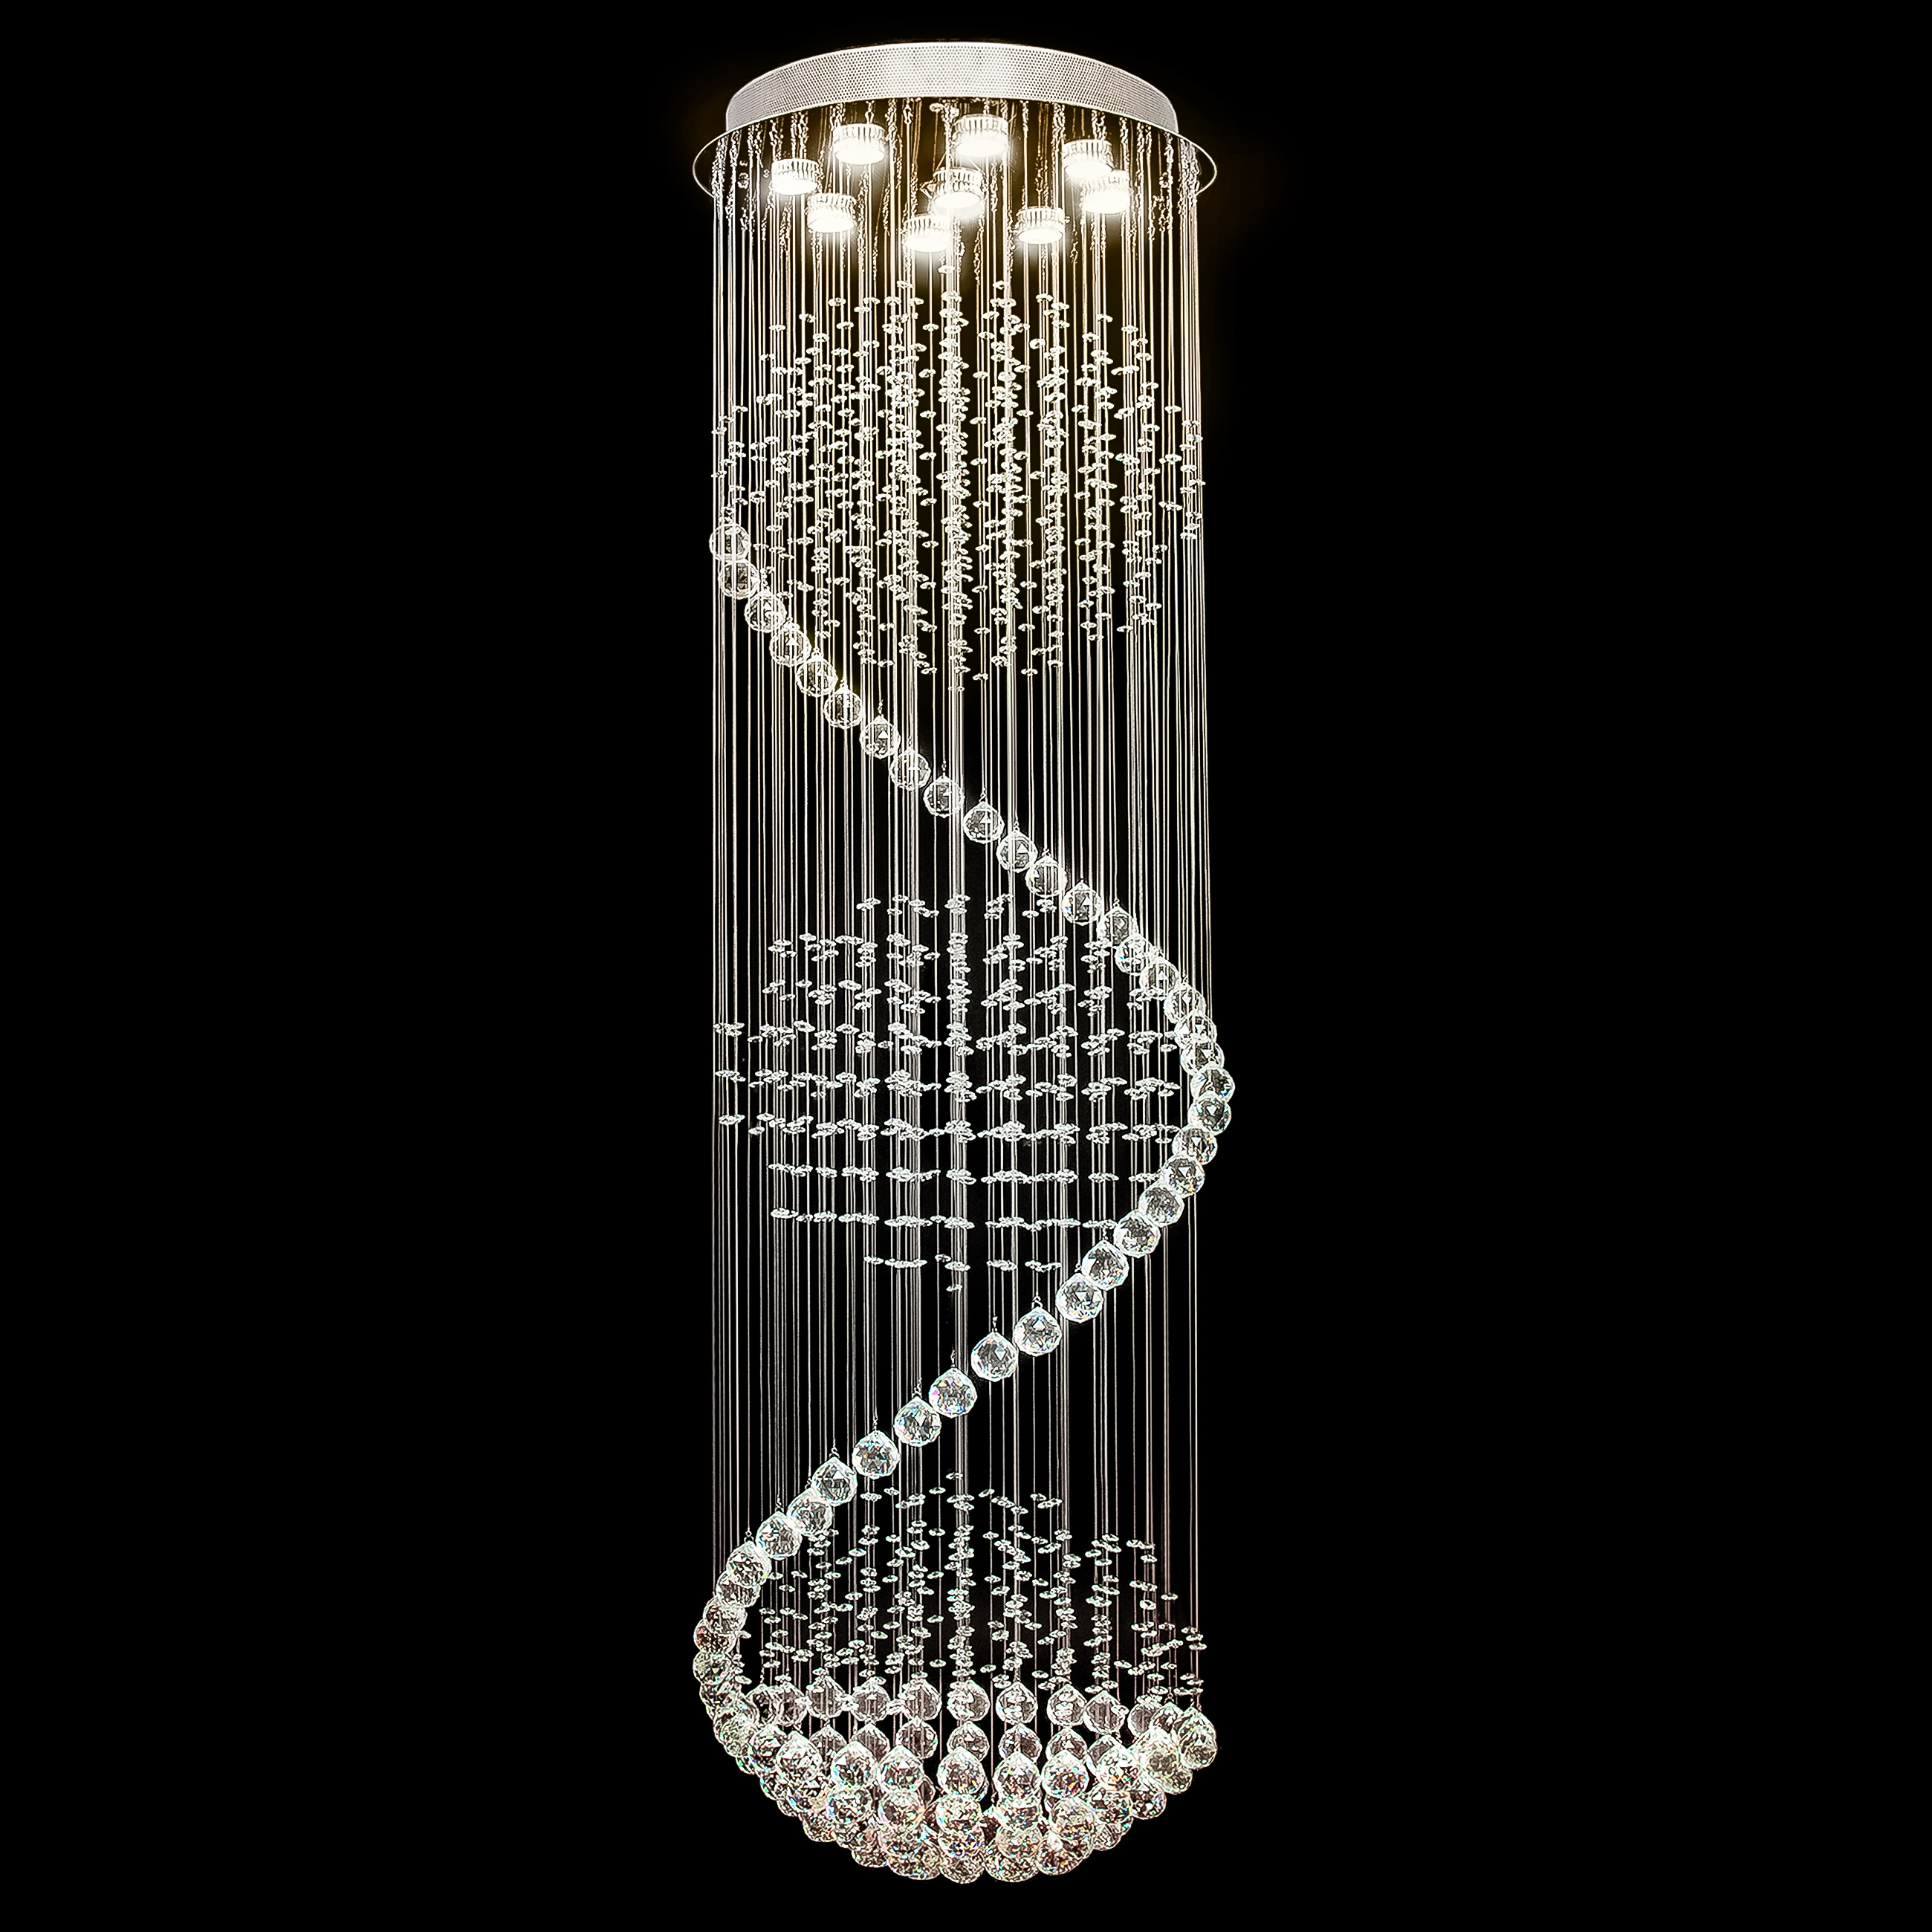 Best Choice Products Modern LED Spiral Rain Drop Chandelier Lighting Fixture for Living Room, Hallway, Entryway Silver by Best Choice Products